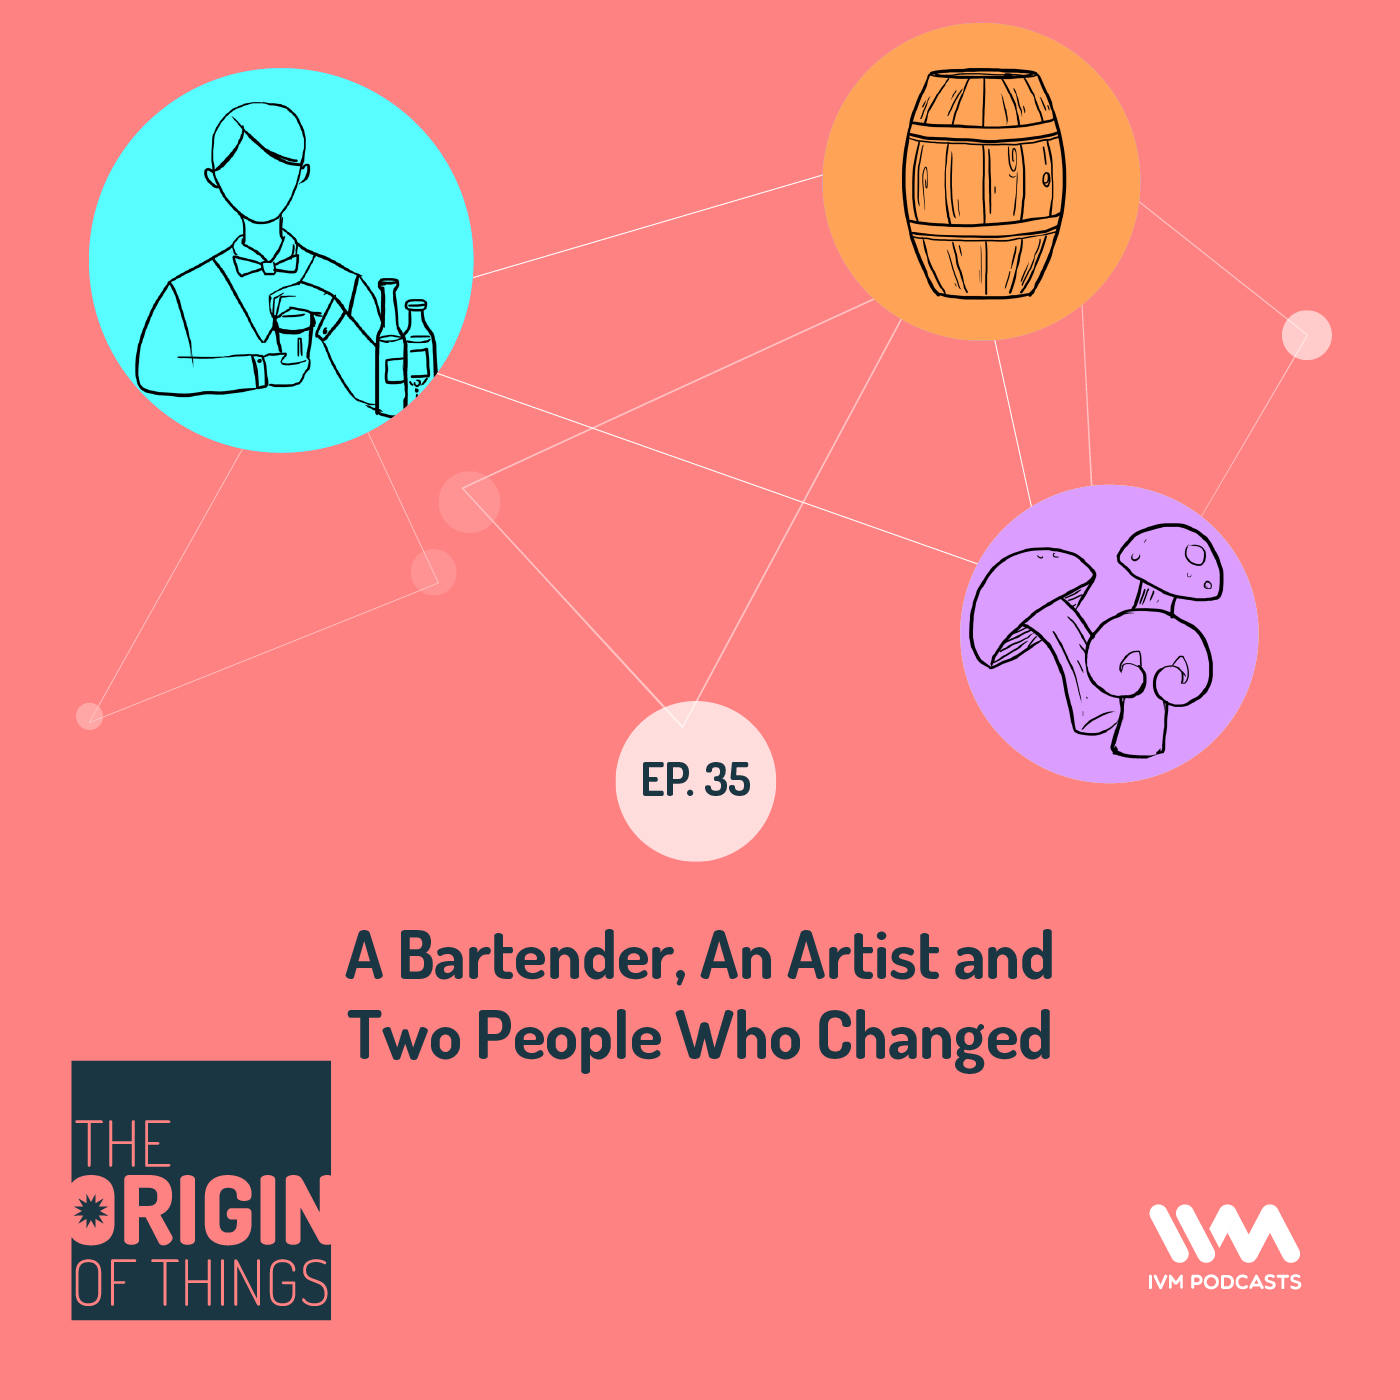 Ep. 35: A Bartender, An Artist and Two People Who Changed